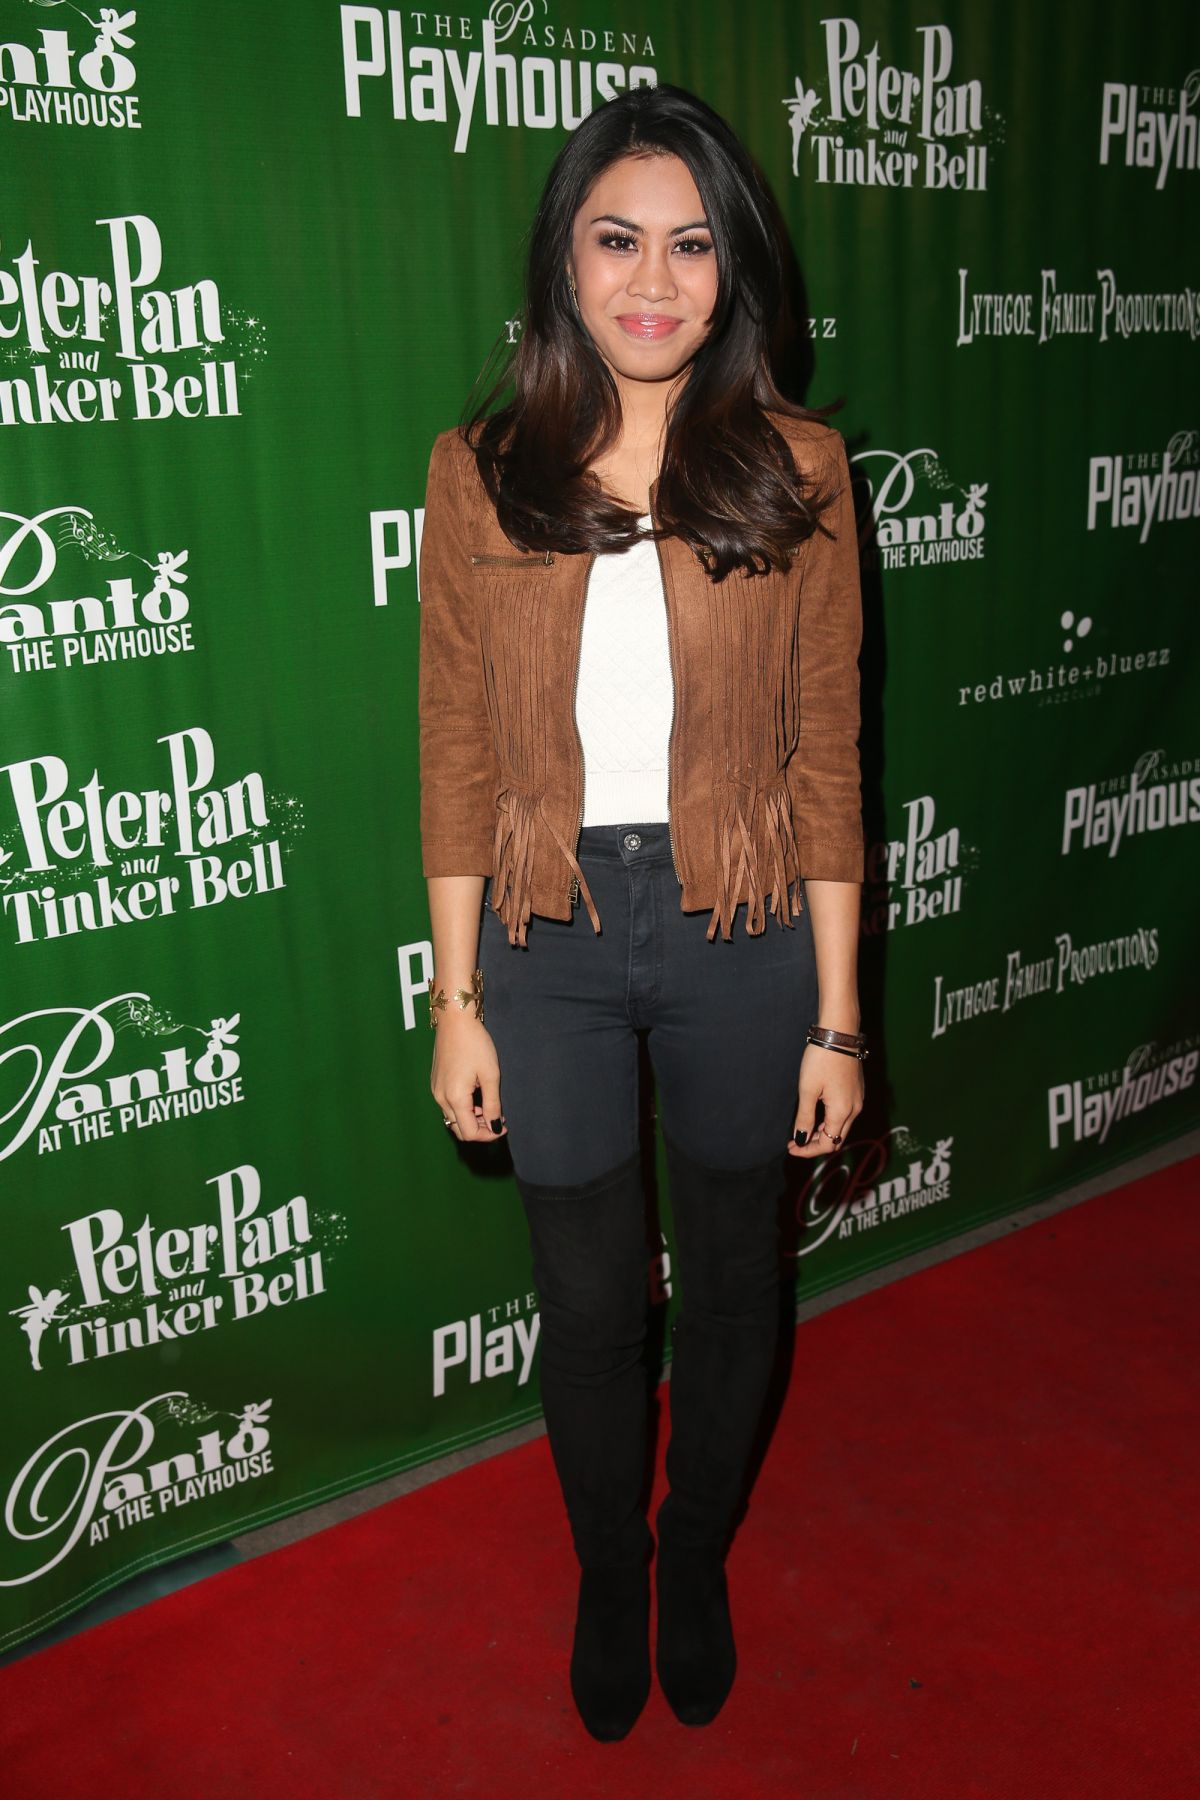 ASHLEY ARGOTA at Peter Pan and Tinker Bell – A Pirates Christmas Opening Night in Pasadena 12/09/2015